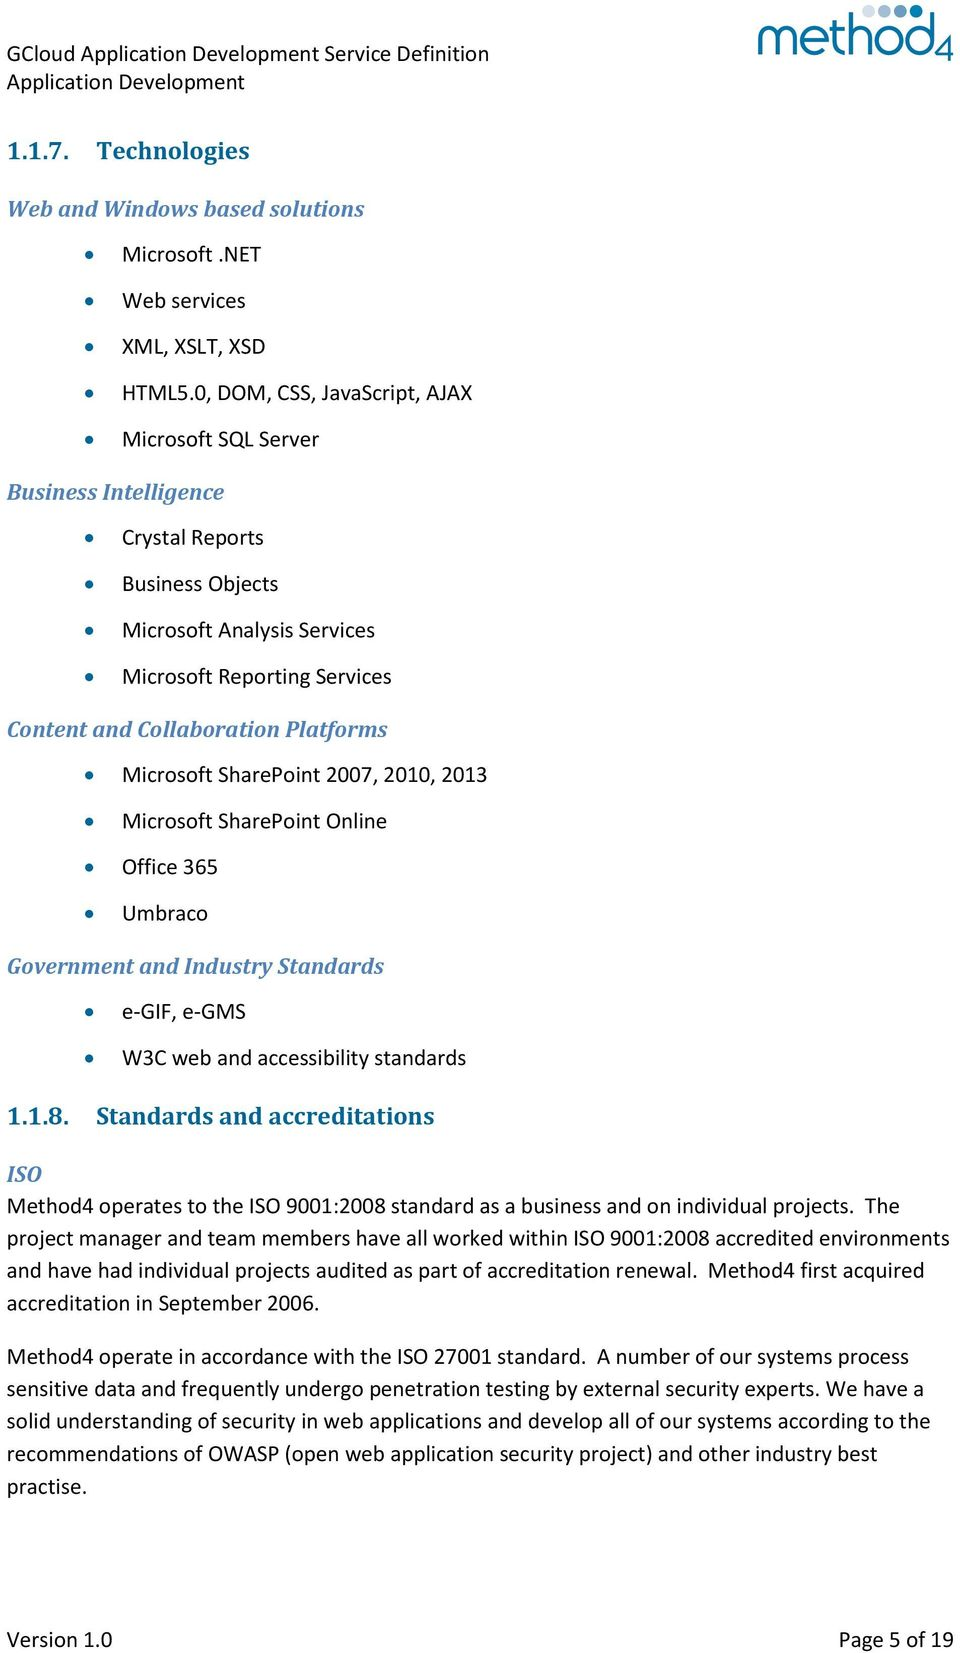 Microsoft SharePoint 2007, 2010, 2013 Microsoft SharePoint Online Office 365 Umbraco Government and Industry Standards e-gif, e-gms W3C web and accessibility standards 1.1.8.